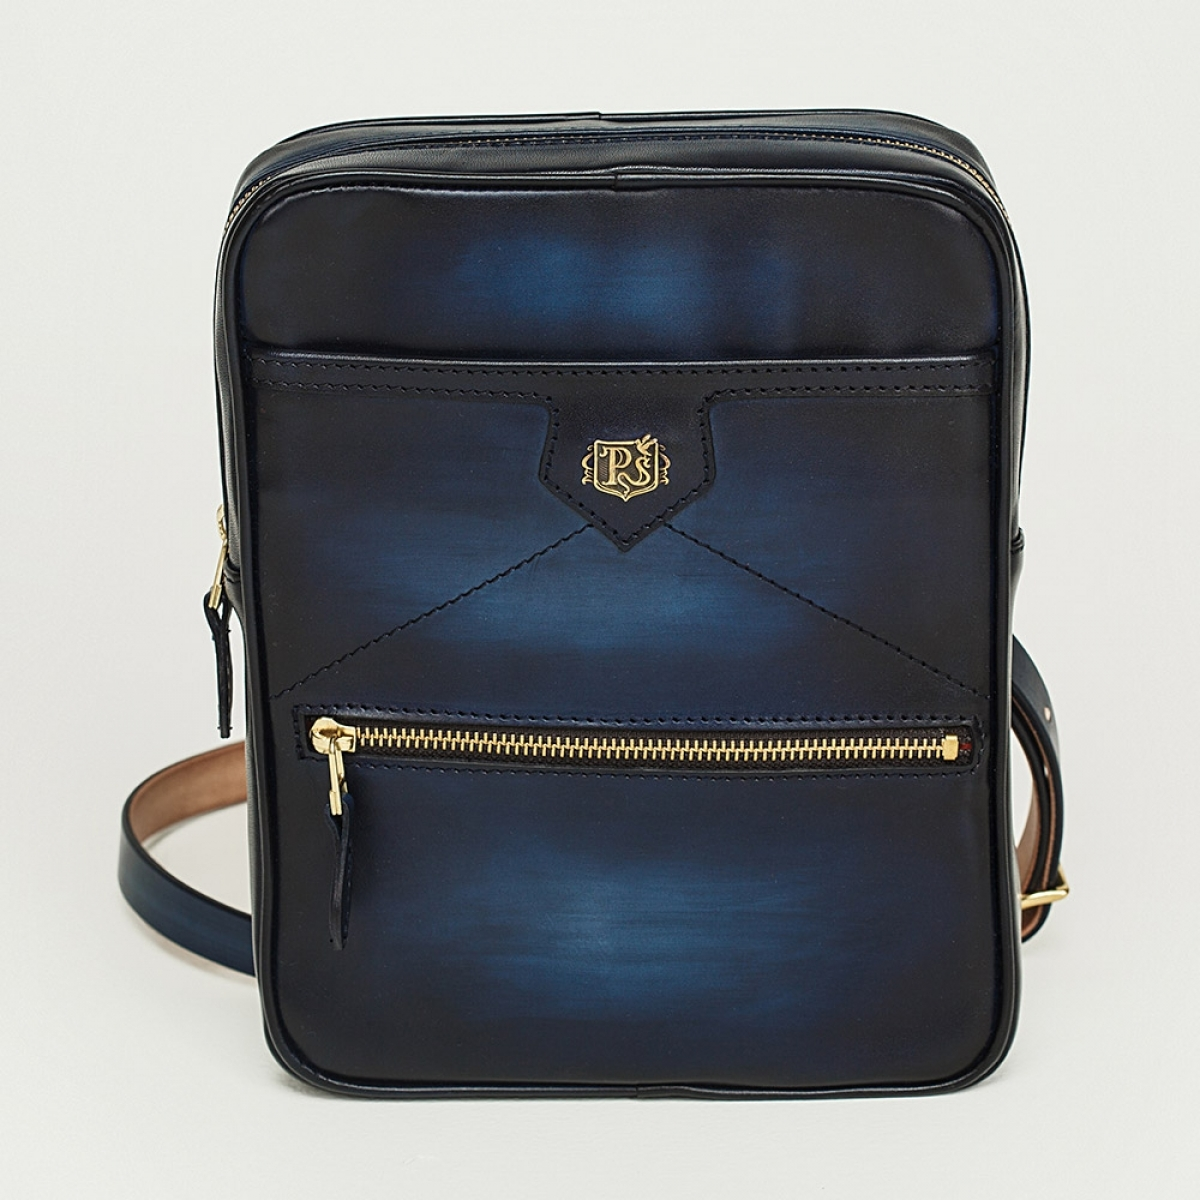 Crossbody bag MEZZO midnight blue